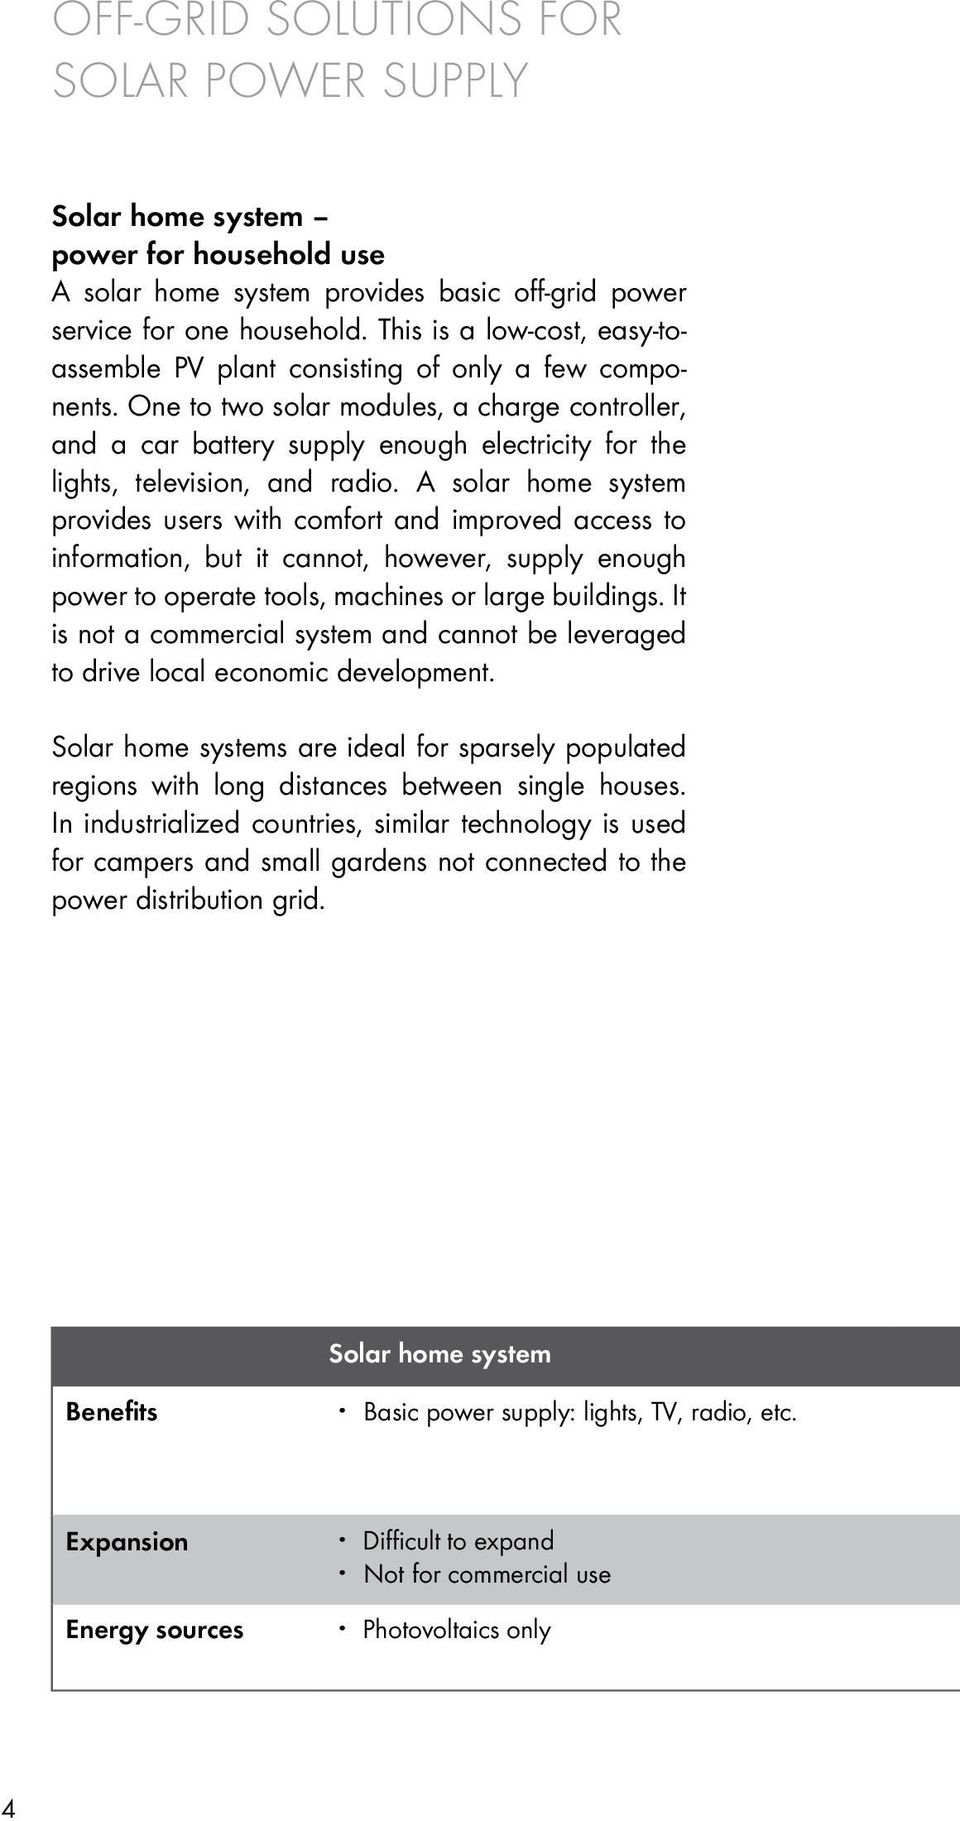 One to two solar modules, a charge controller, and a car battery supply enough electricity for the lights, television, and radio.